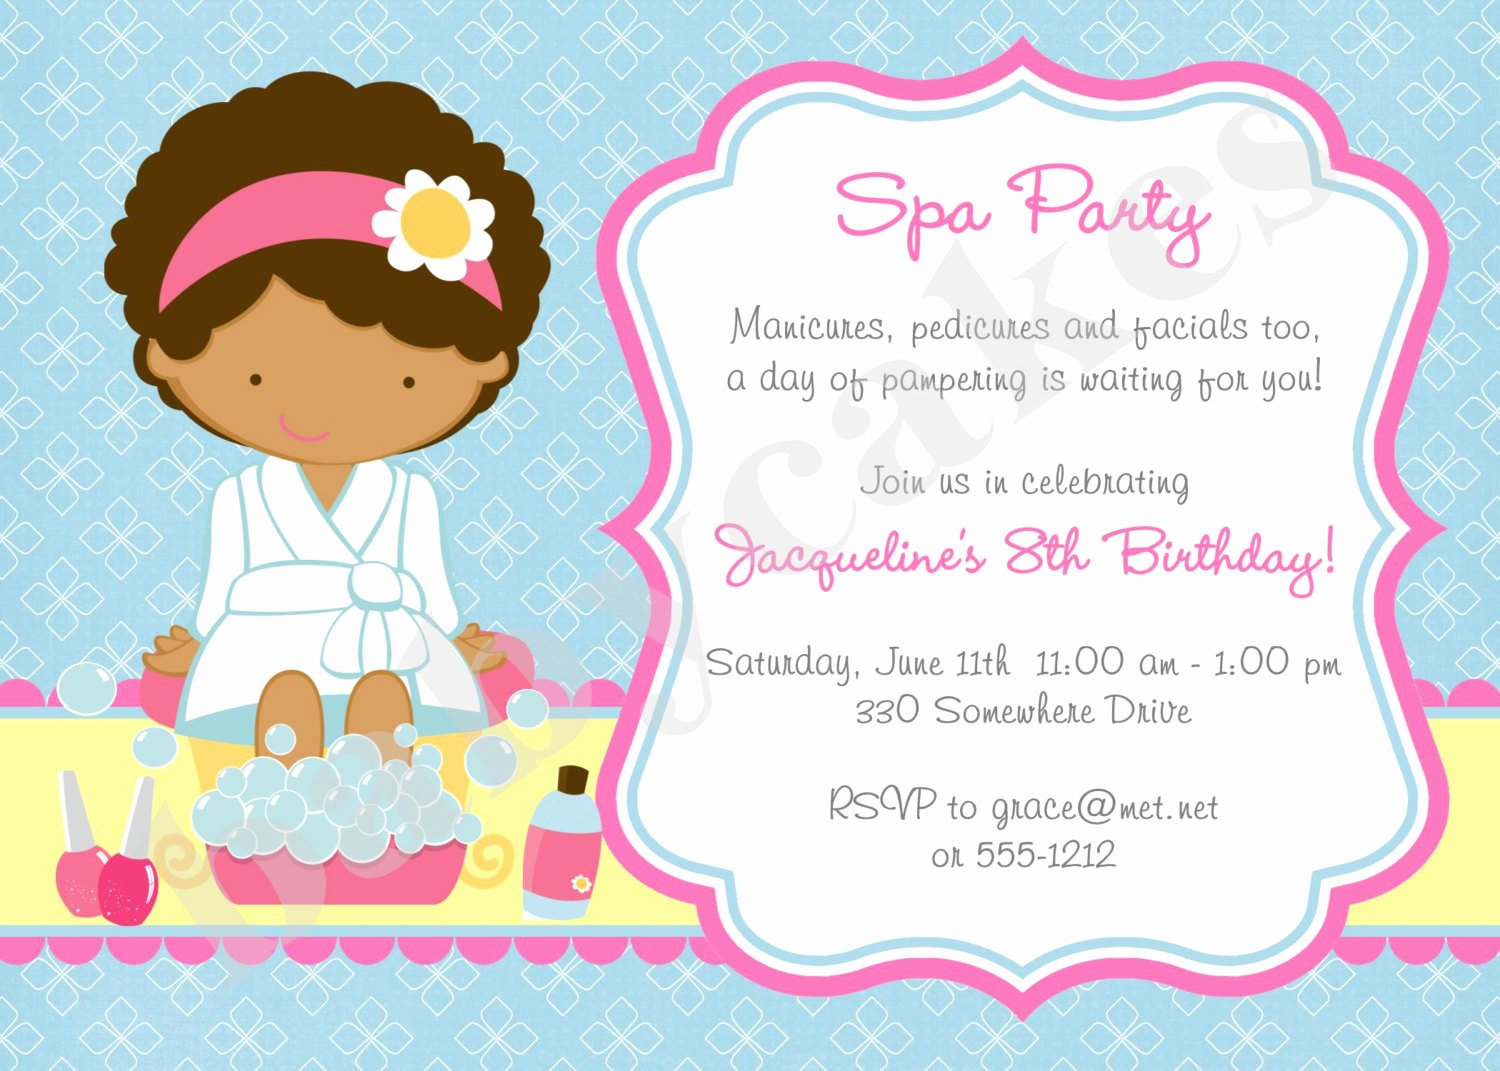 Spa Party Invitation Wording Unique Spa Party Invitation Spa Birthday Party Invitation Invite Spa